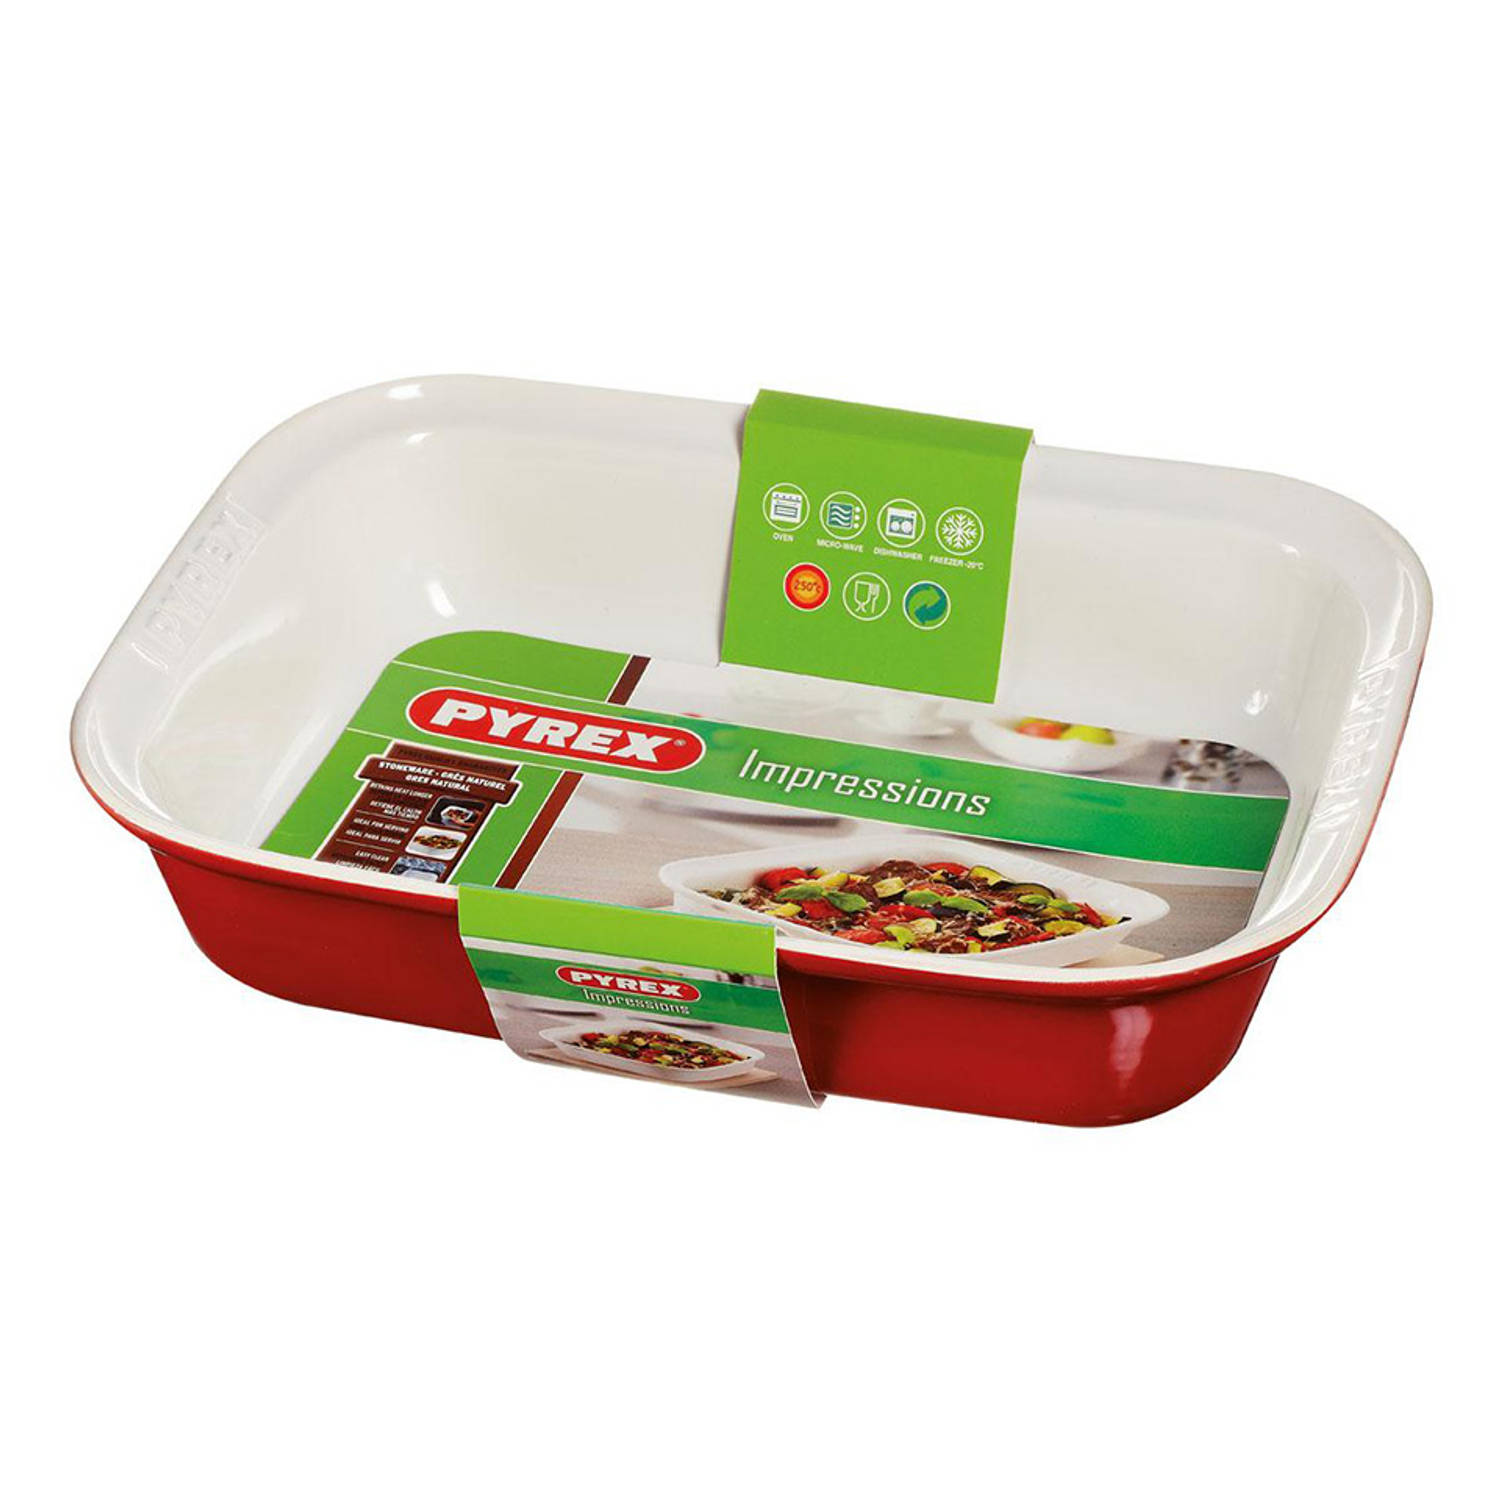 Pyrex Impressions ovenschaal - 33 x 24 cm - rood